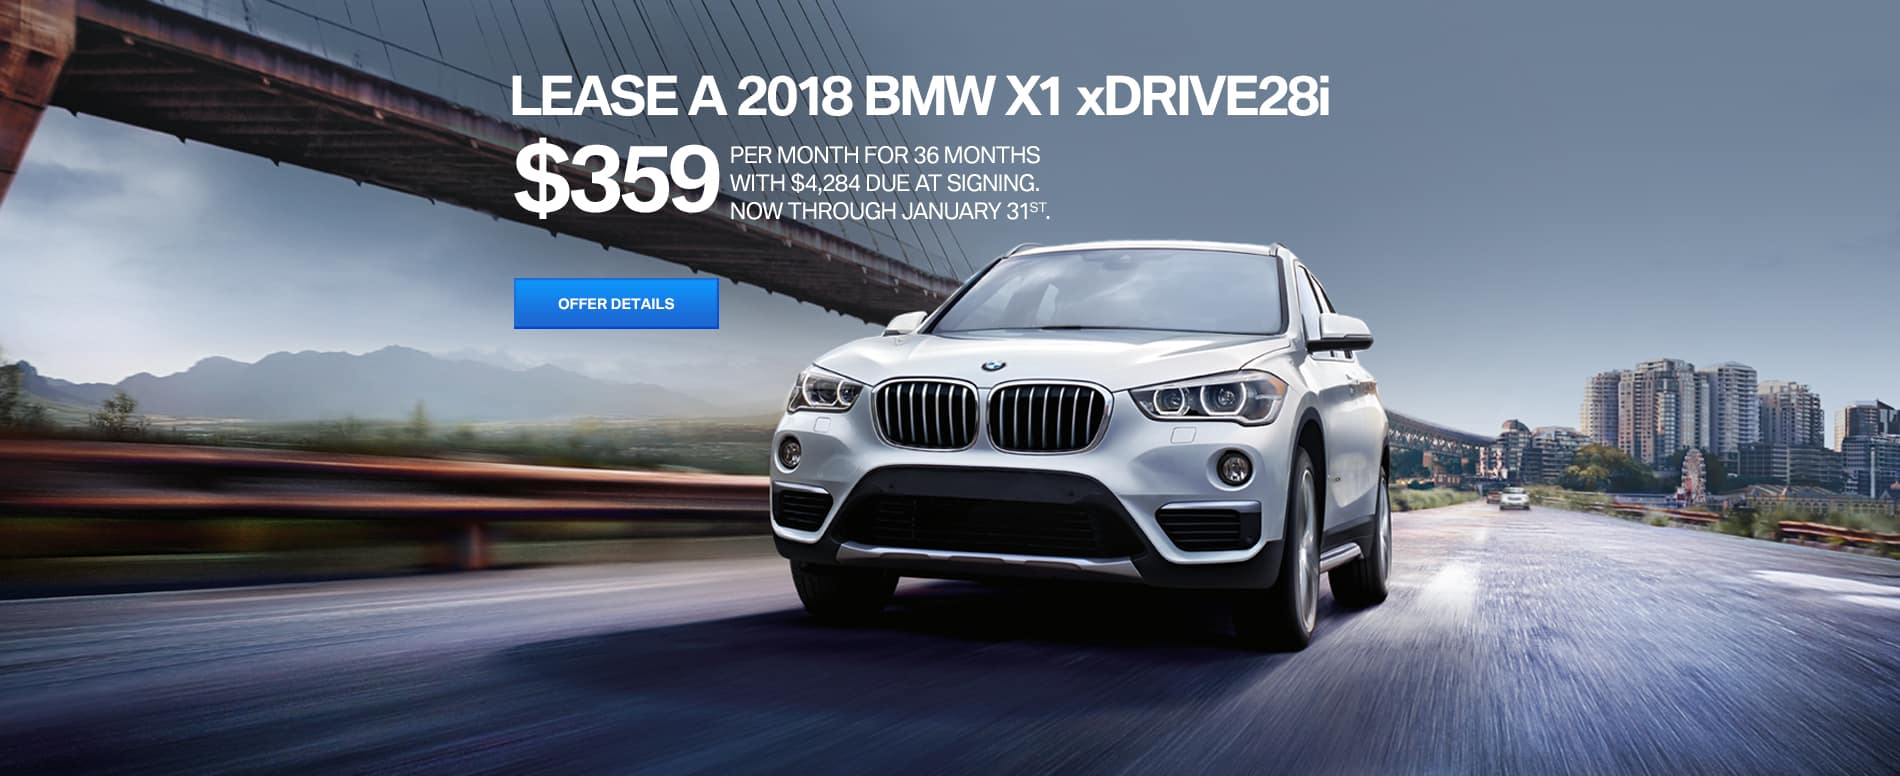 2018 BMW X1 xDRIVE28i Jan